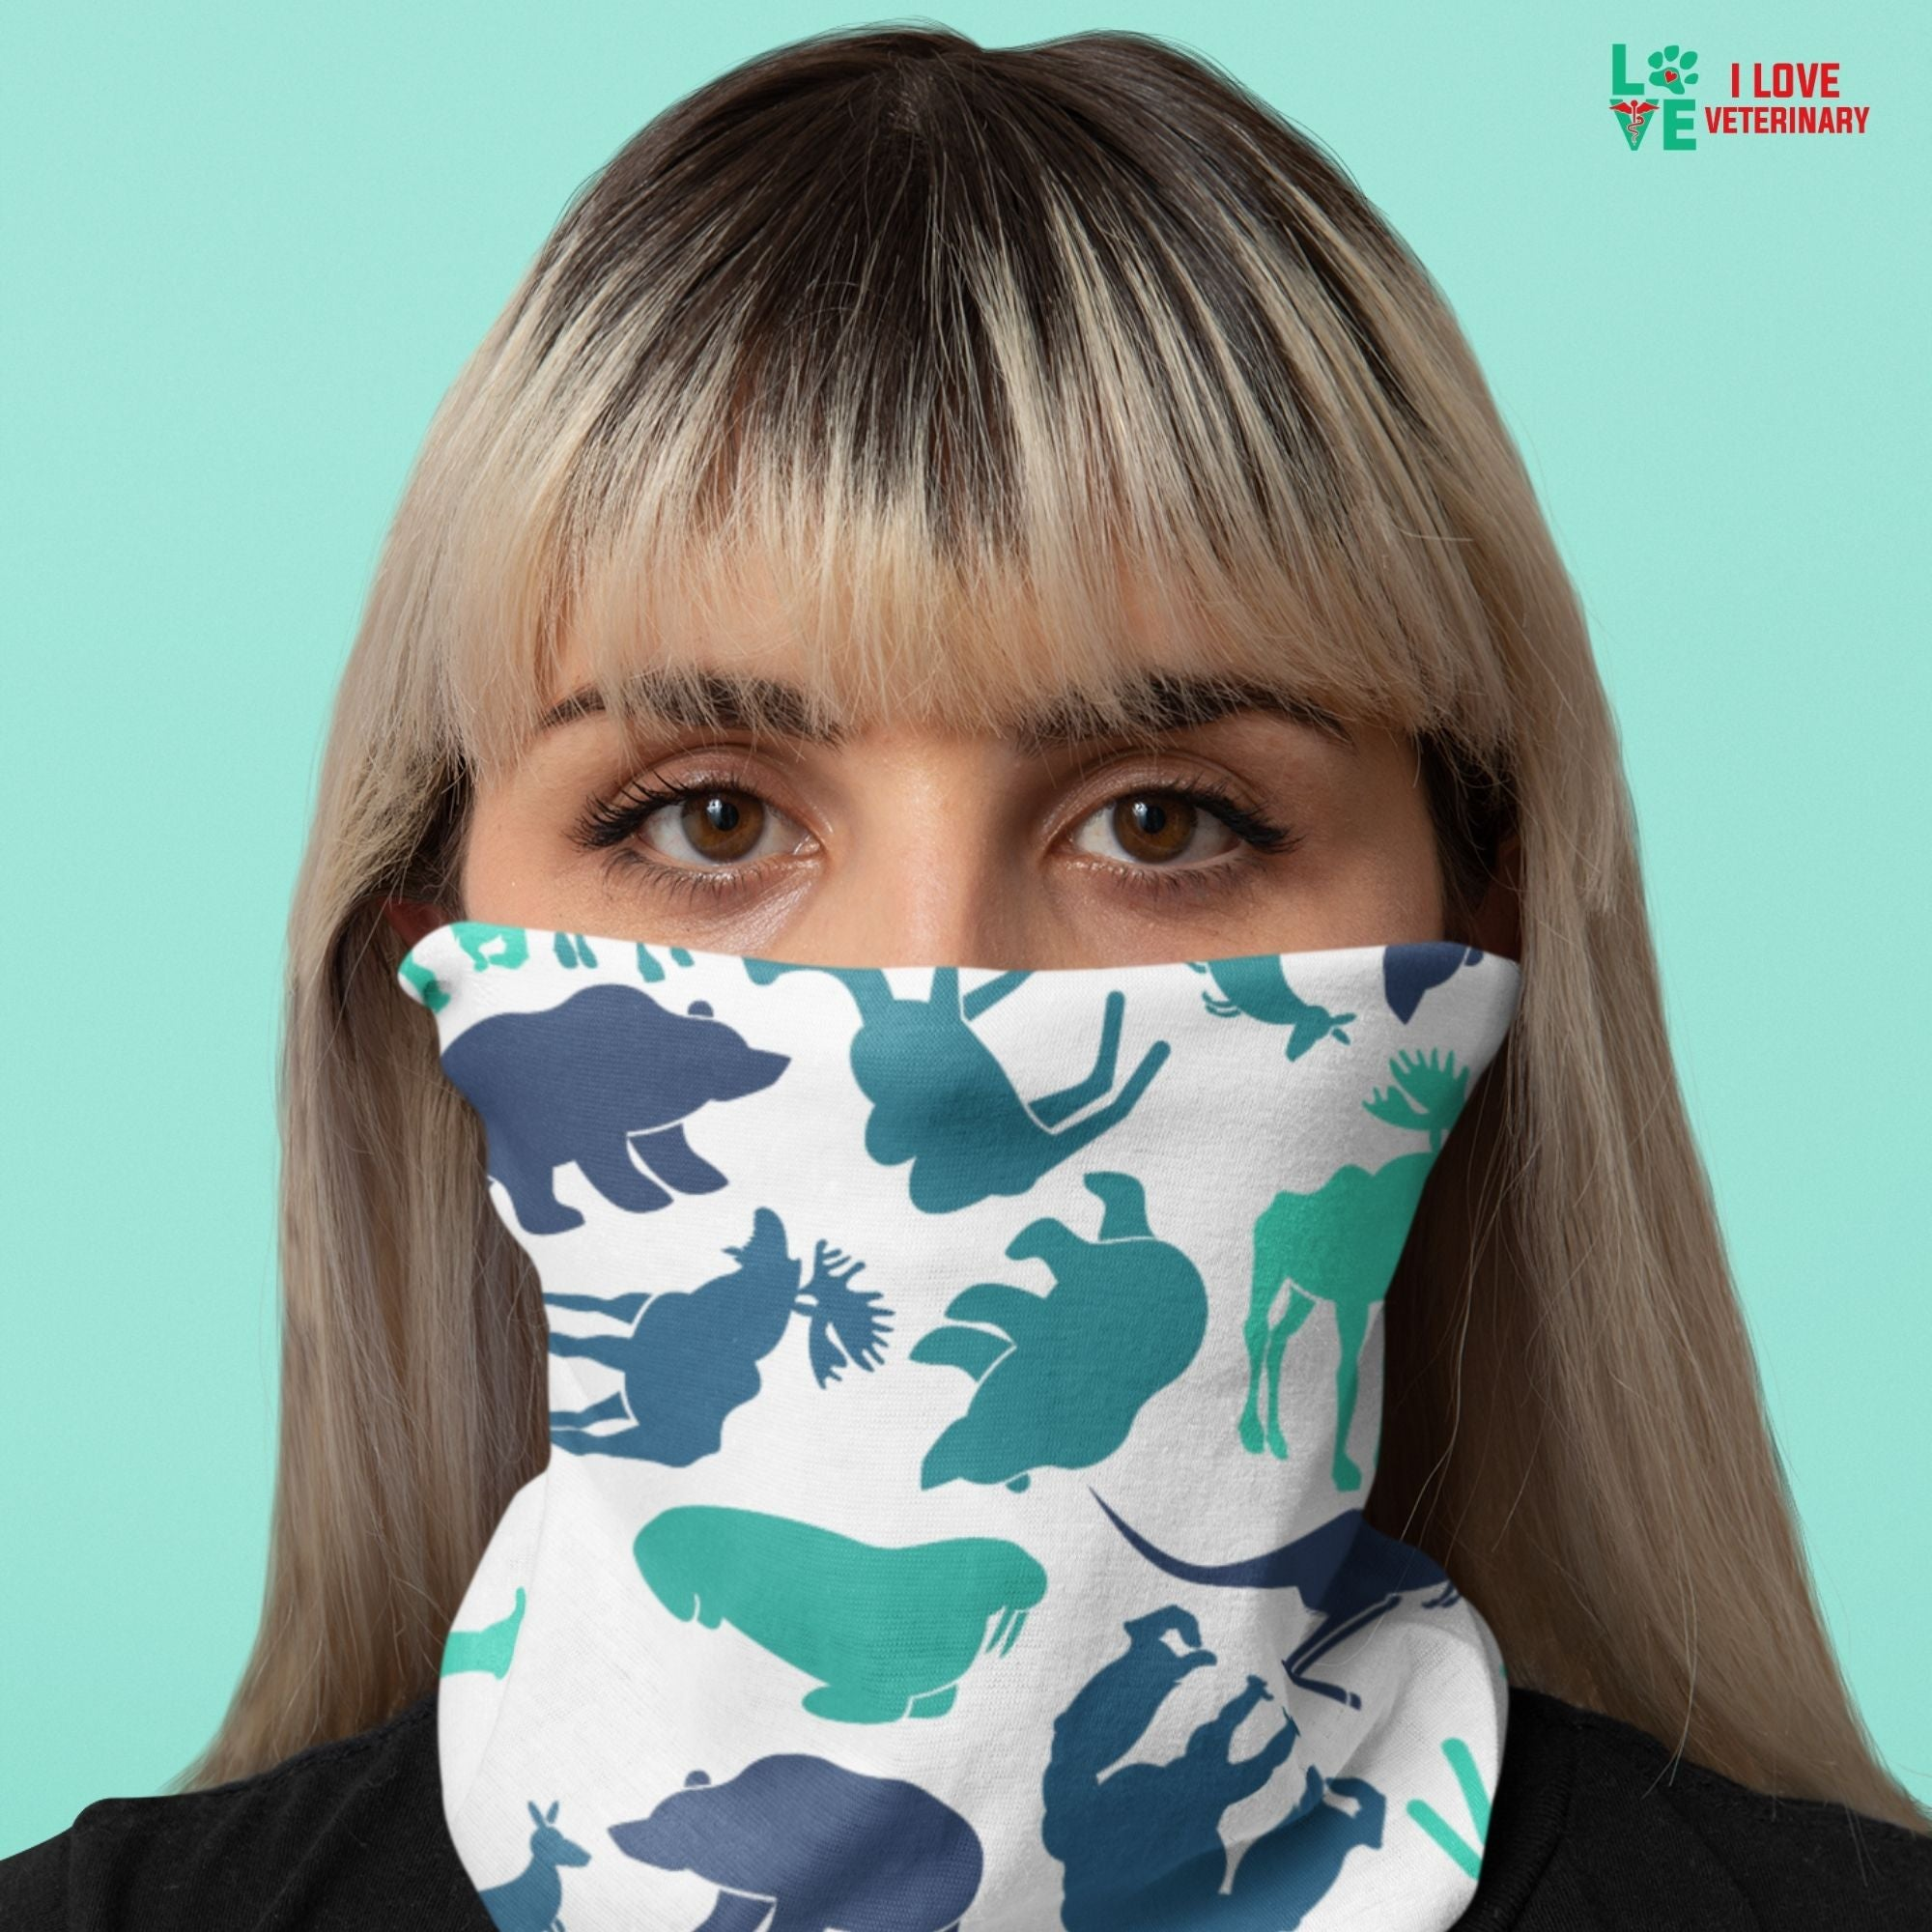 Moose, bear, kangaroo white pattern Sublimation Neck Gaiter-Accessories-I love Veterinary